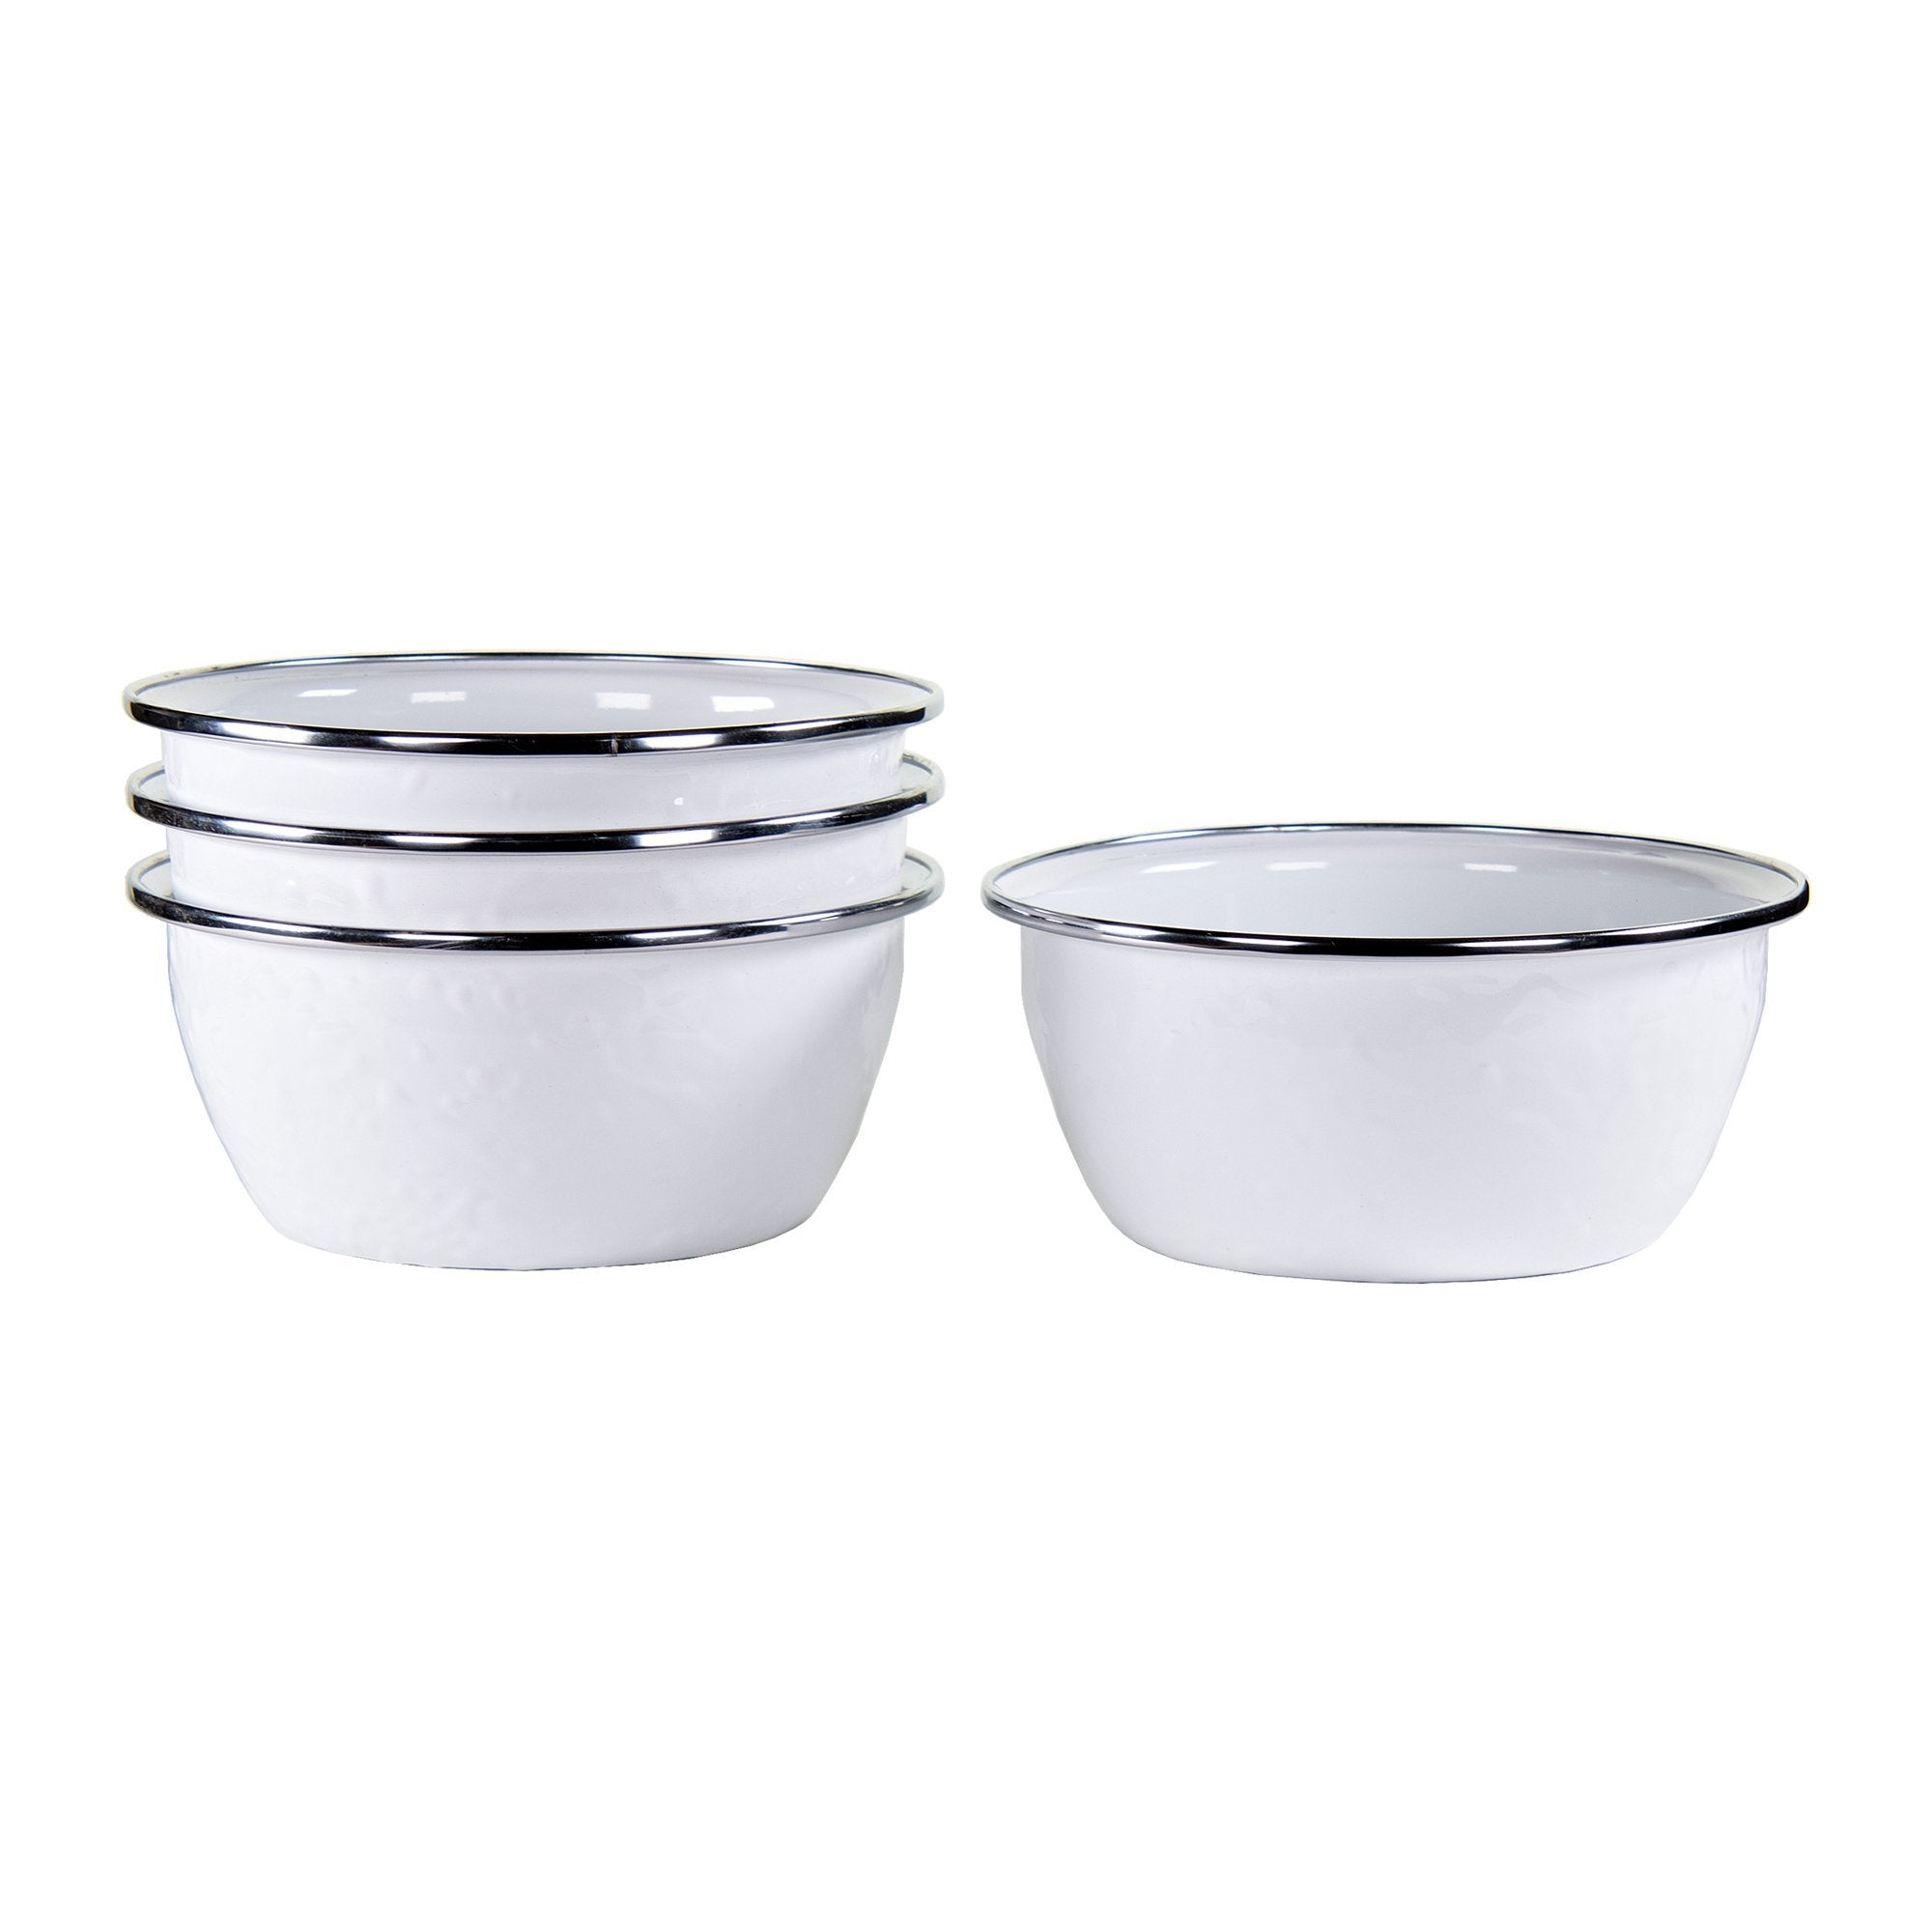 WW61S4 - Set of 4 - Enamelware Solid White - Salad Bowls by Golden Rabbit